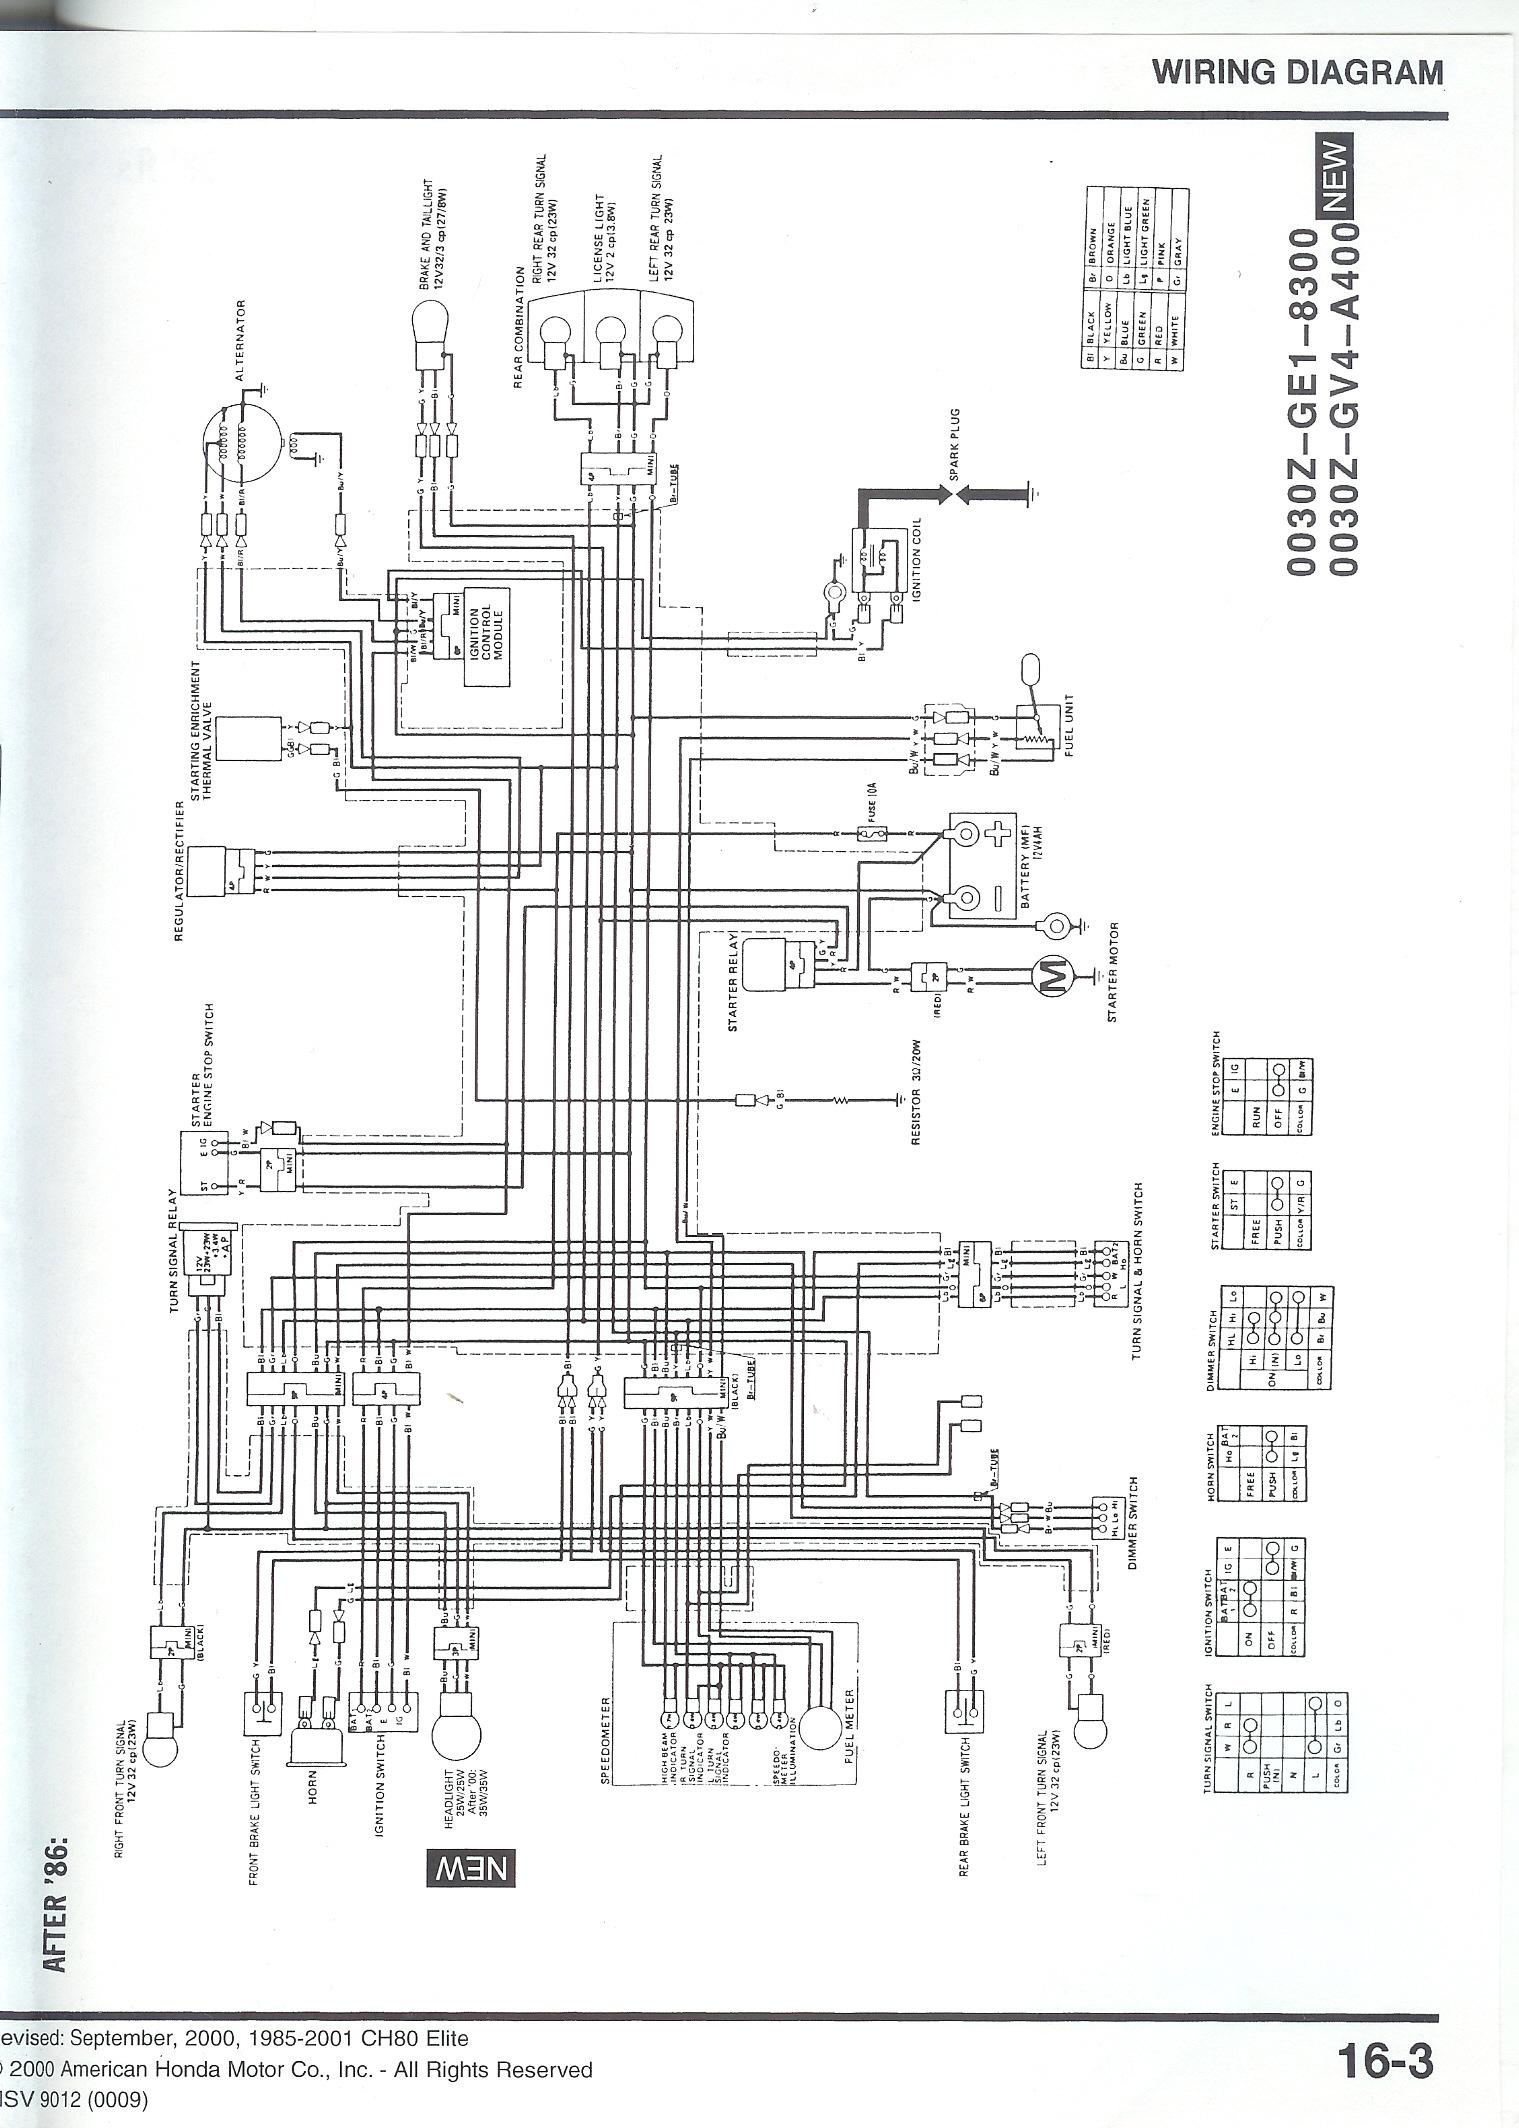 atc wiring diagram auto electrical wiring diagram rh sakanoueno me honda  elite 80 wiring diagram 1987 honda elite wiring diagram